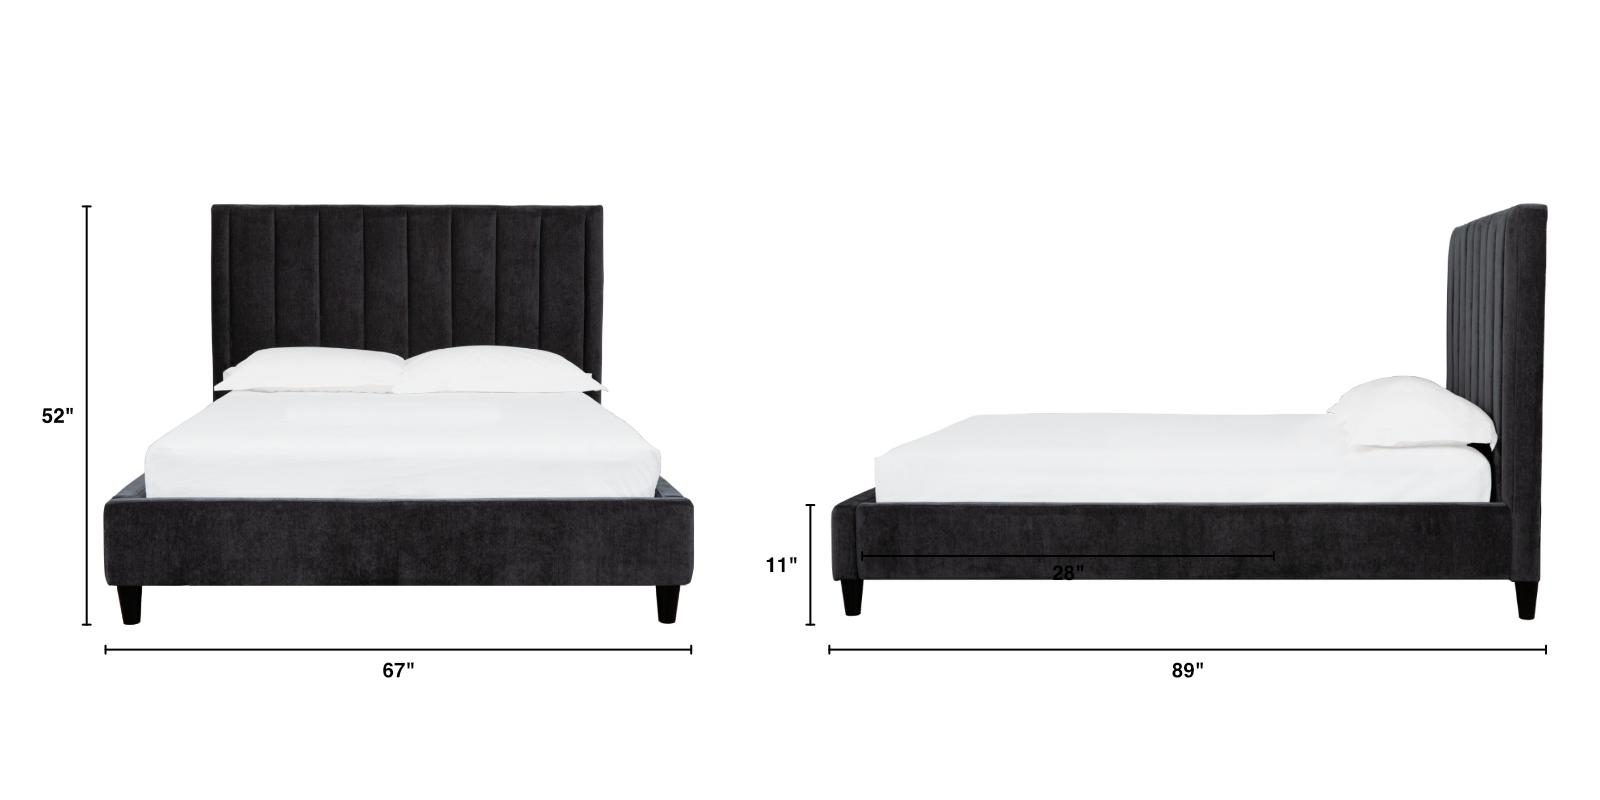 Thia Queen Bed Dimensions